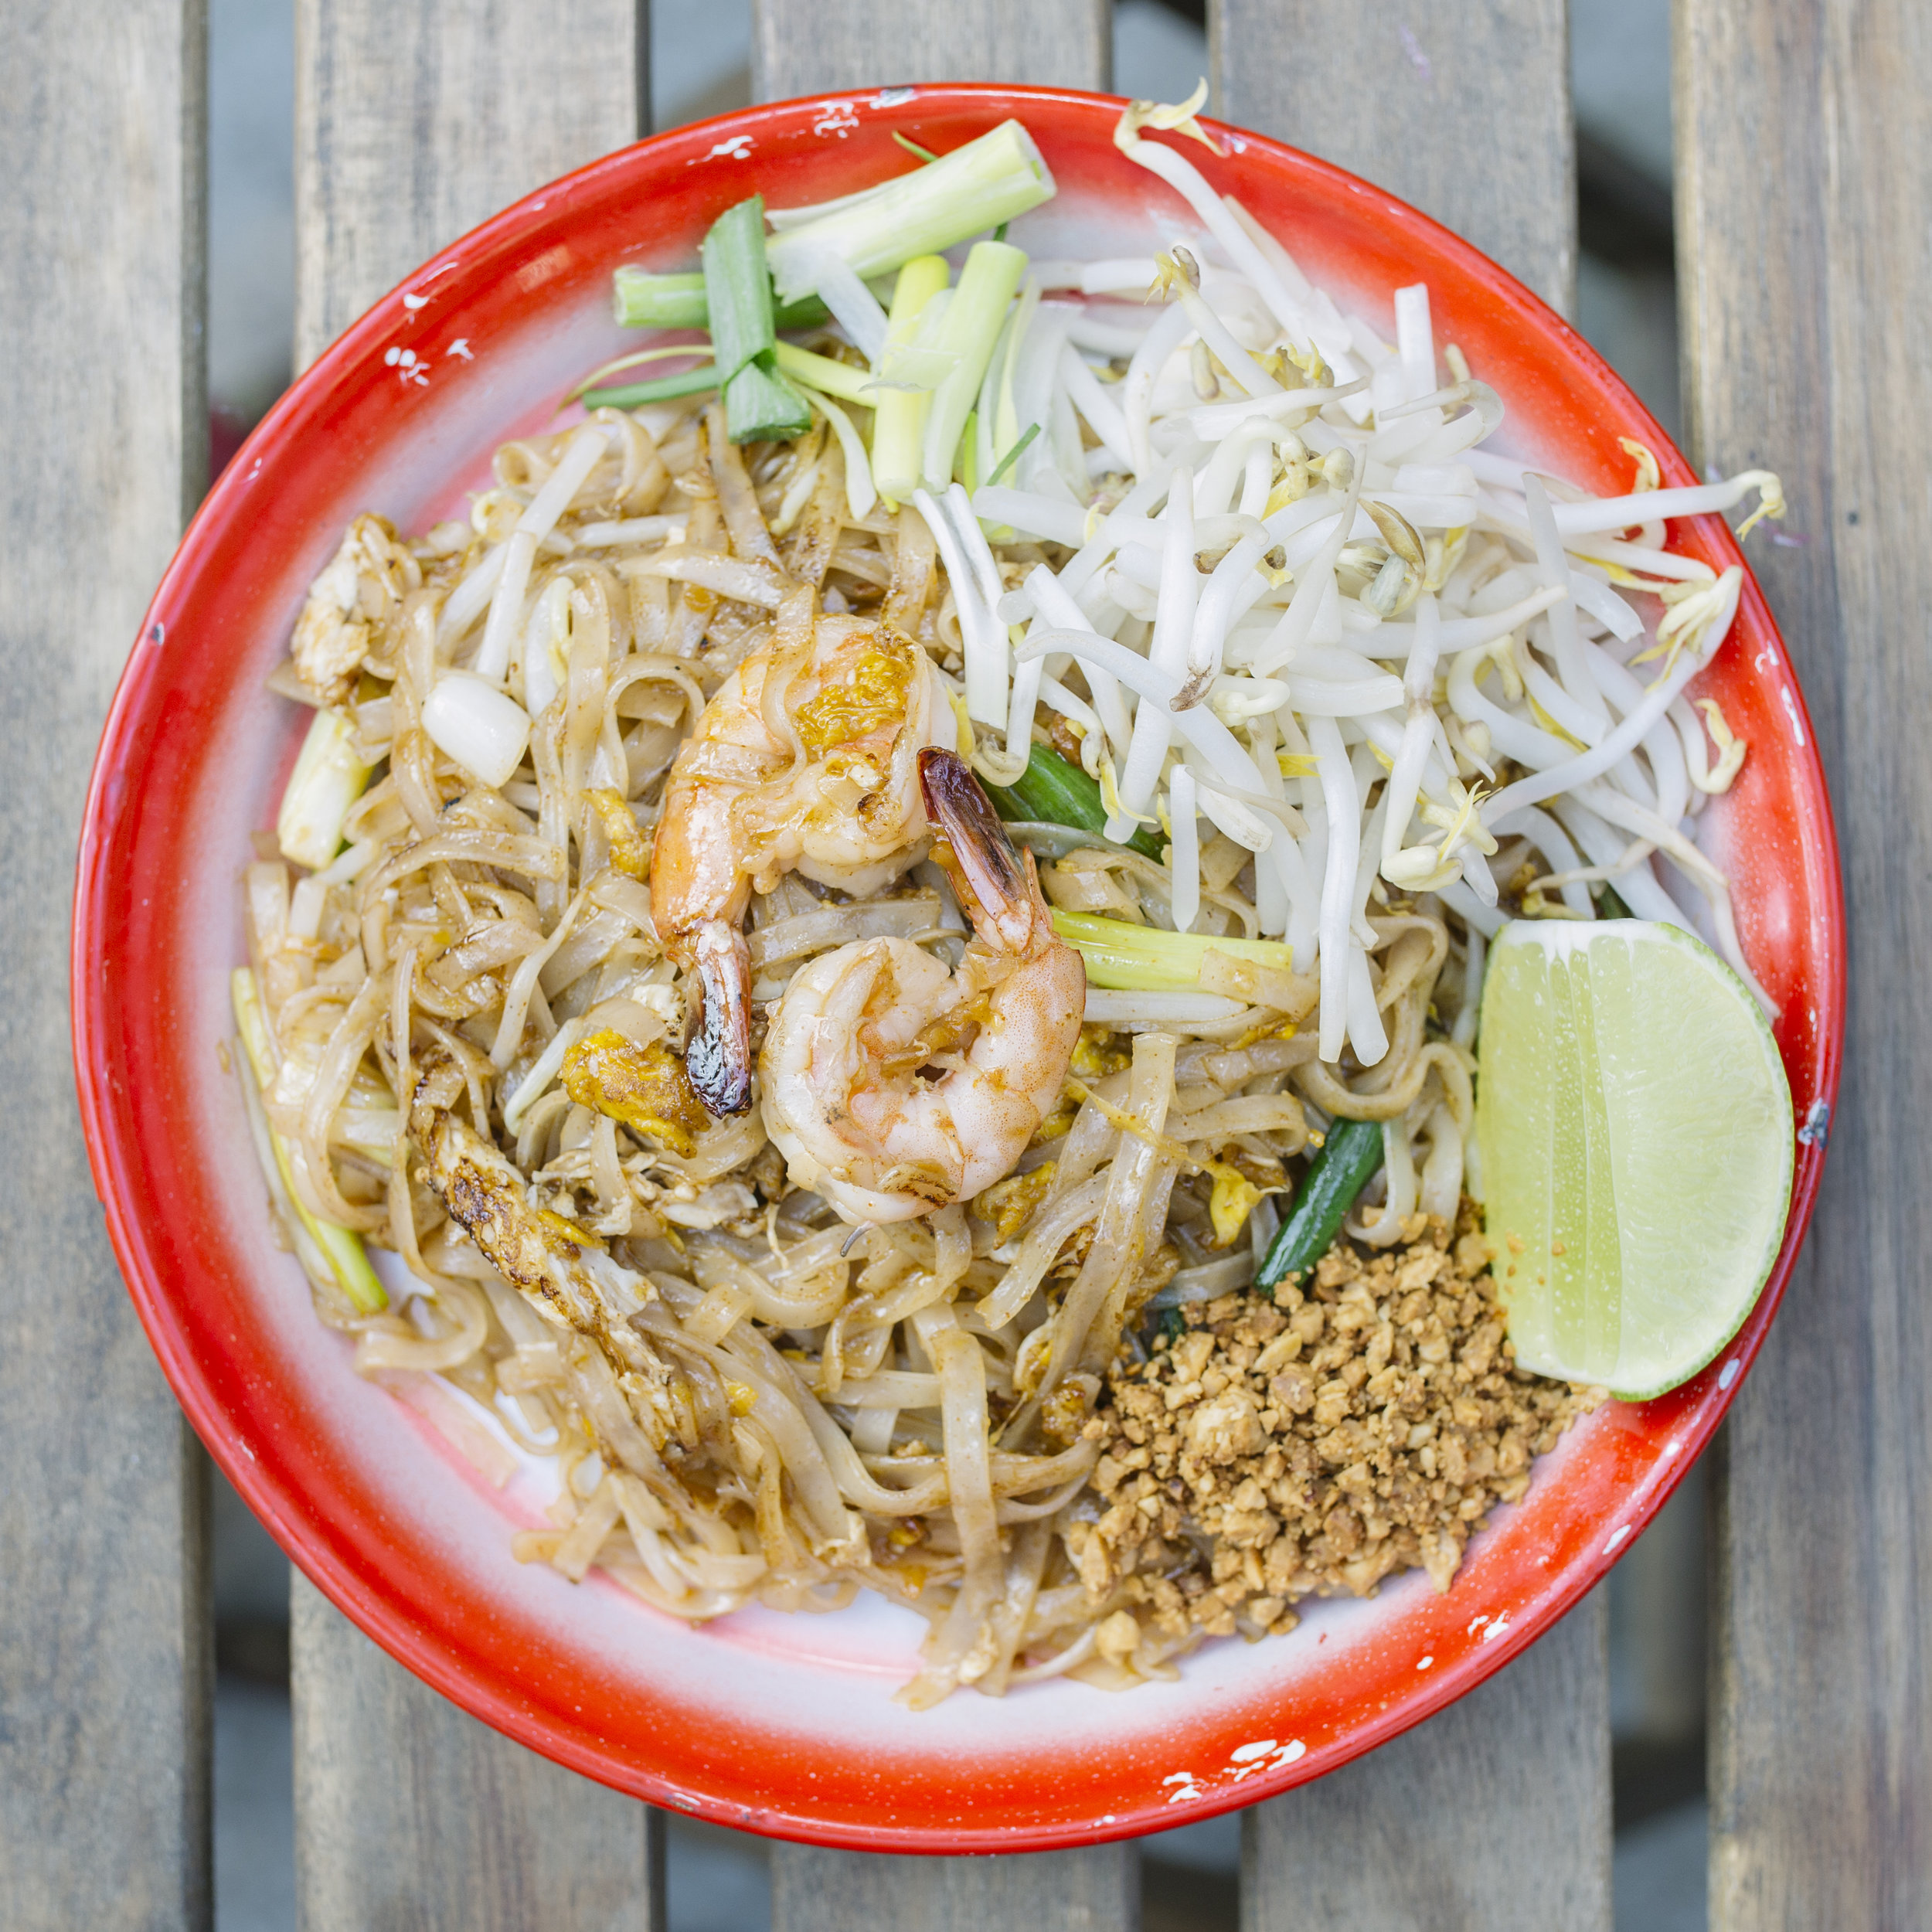 Pad Thai - Stir Fried Fresh Rice Noodles with Beansprouts, Chive, Scallion, Roasted Peanuts, and Egg